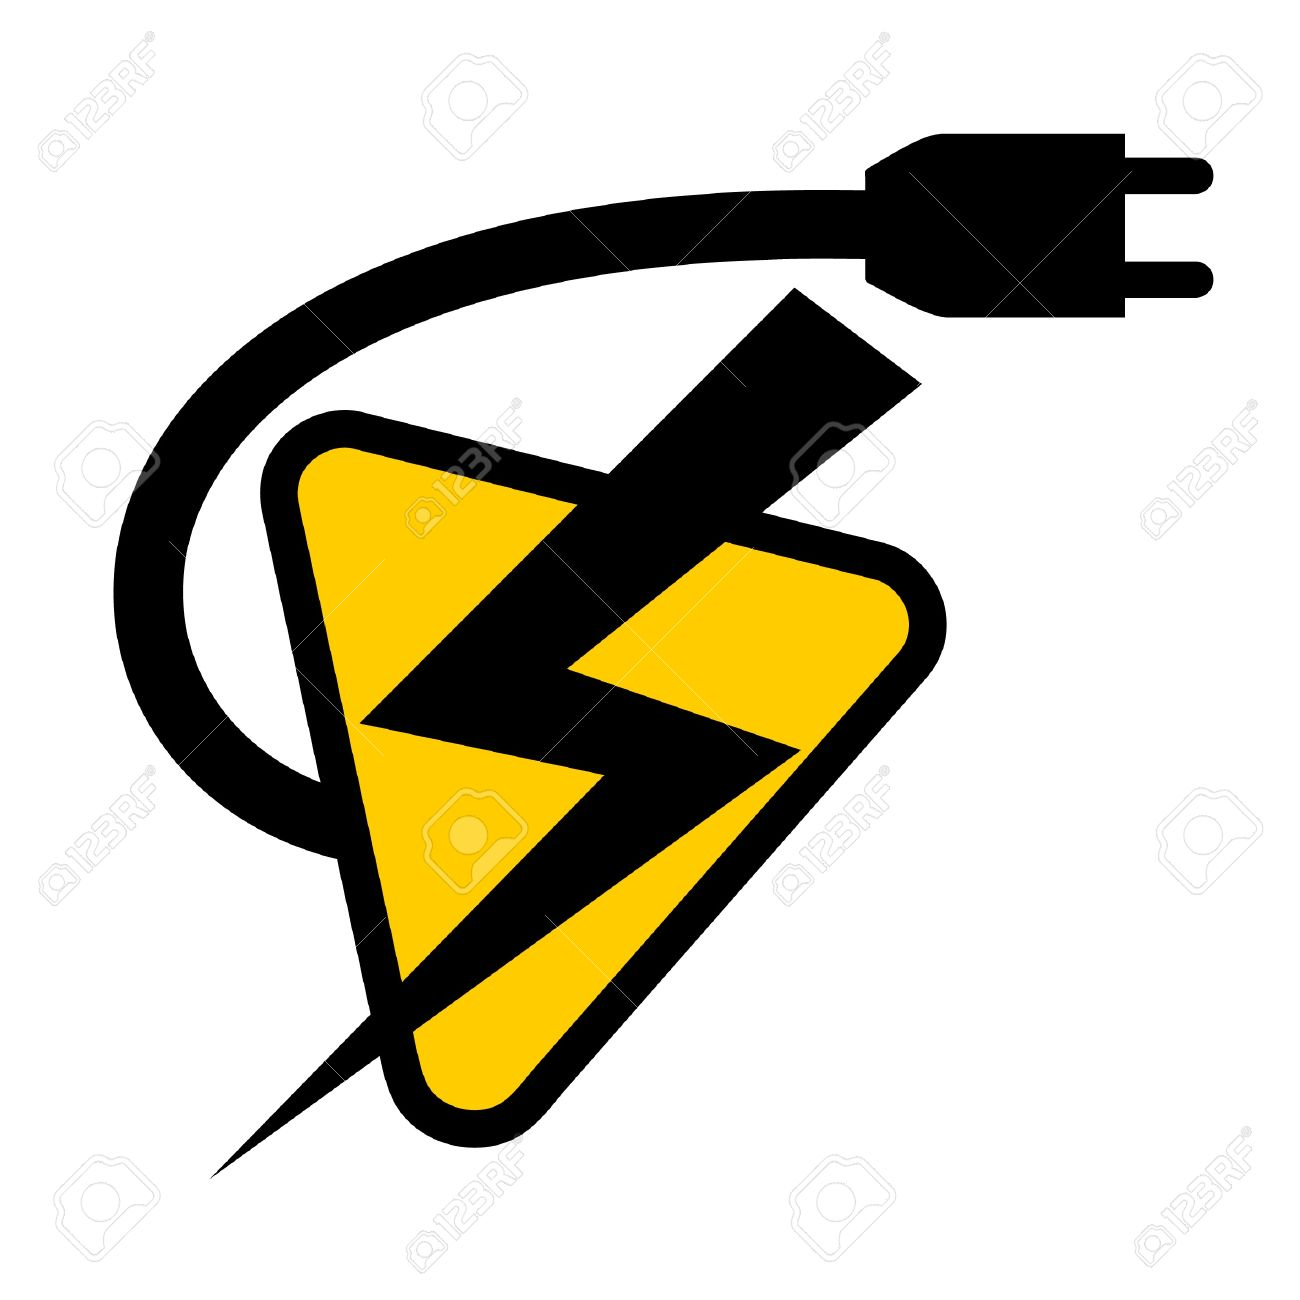 image royalty free download Free download best . Electricity clipart.